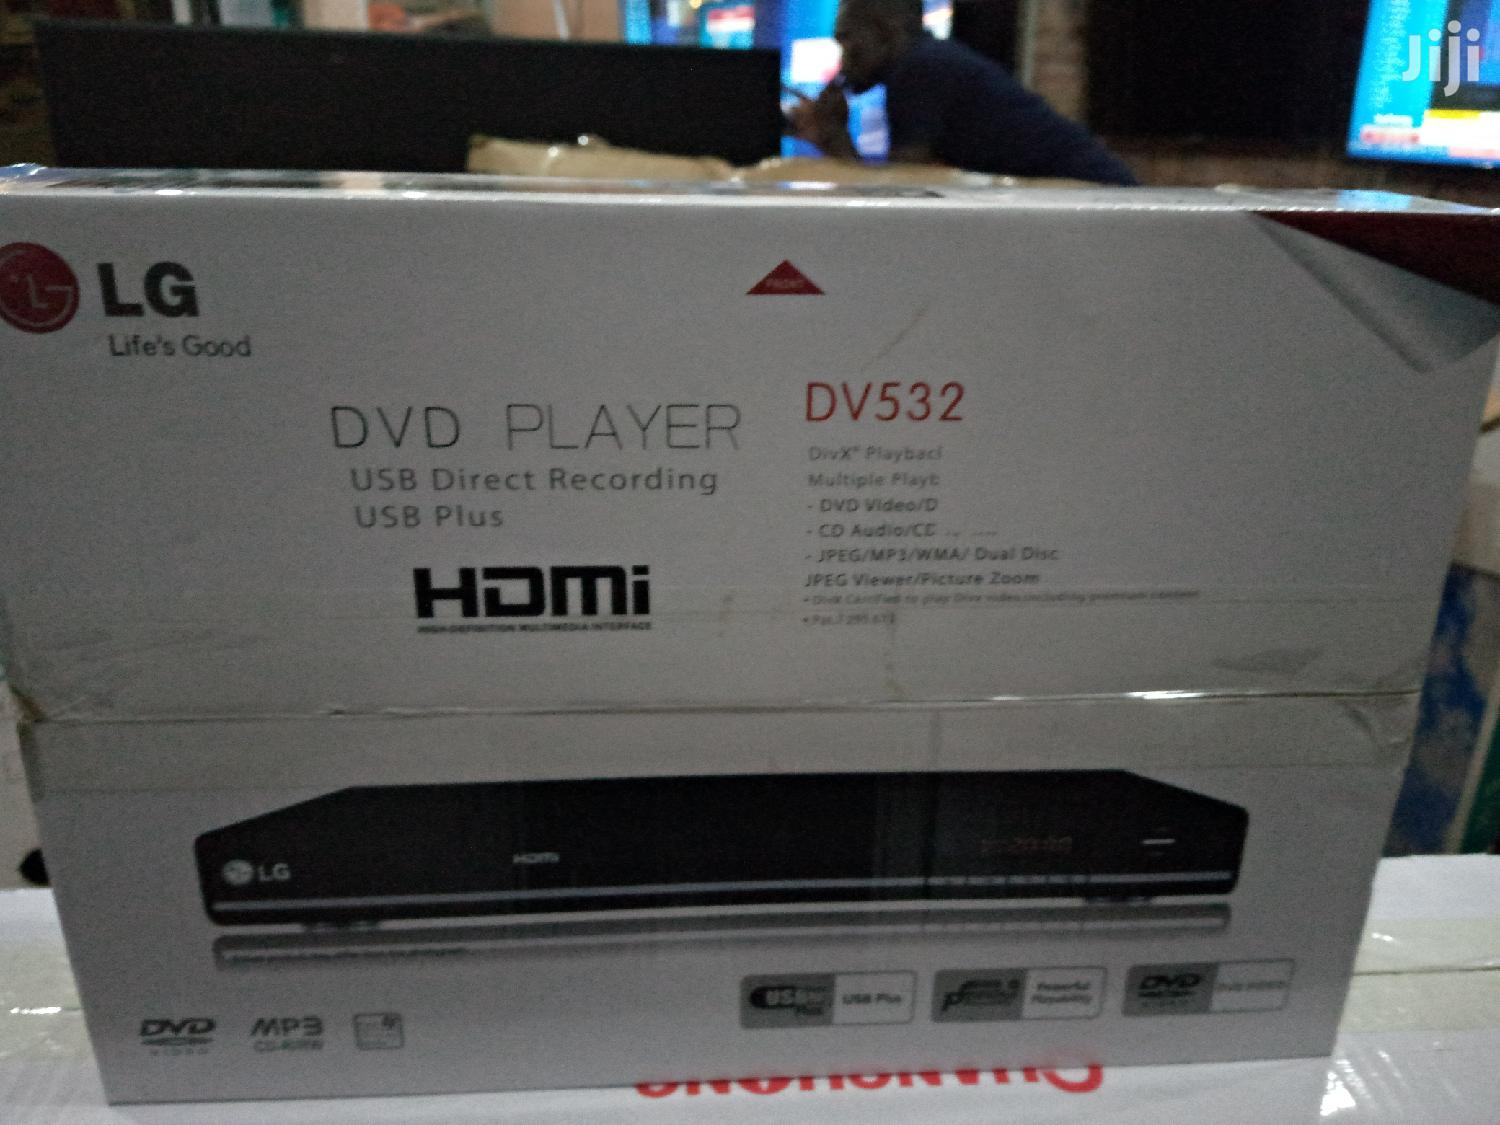 LG DVD Player With Hdmi Port